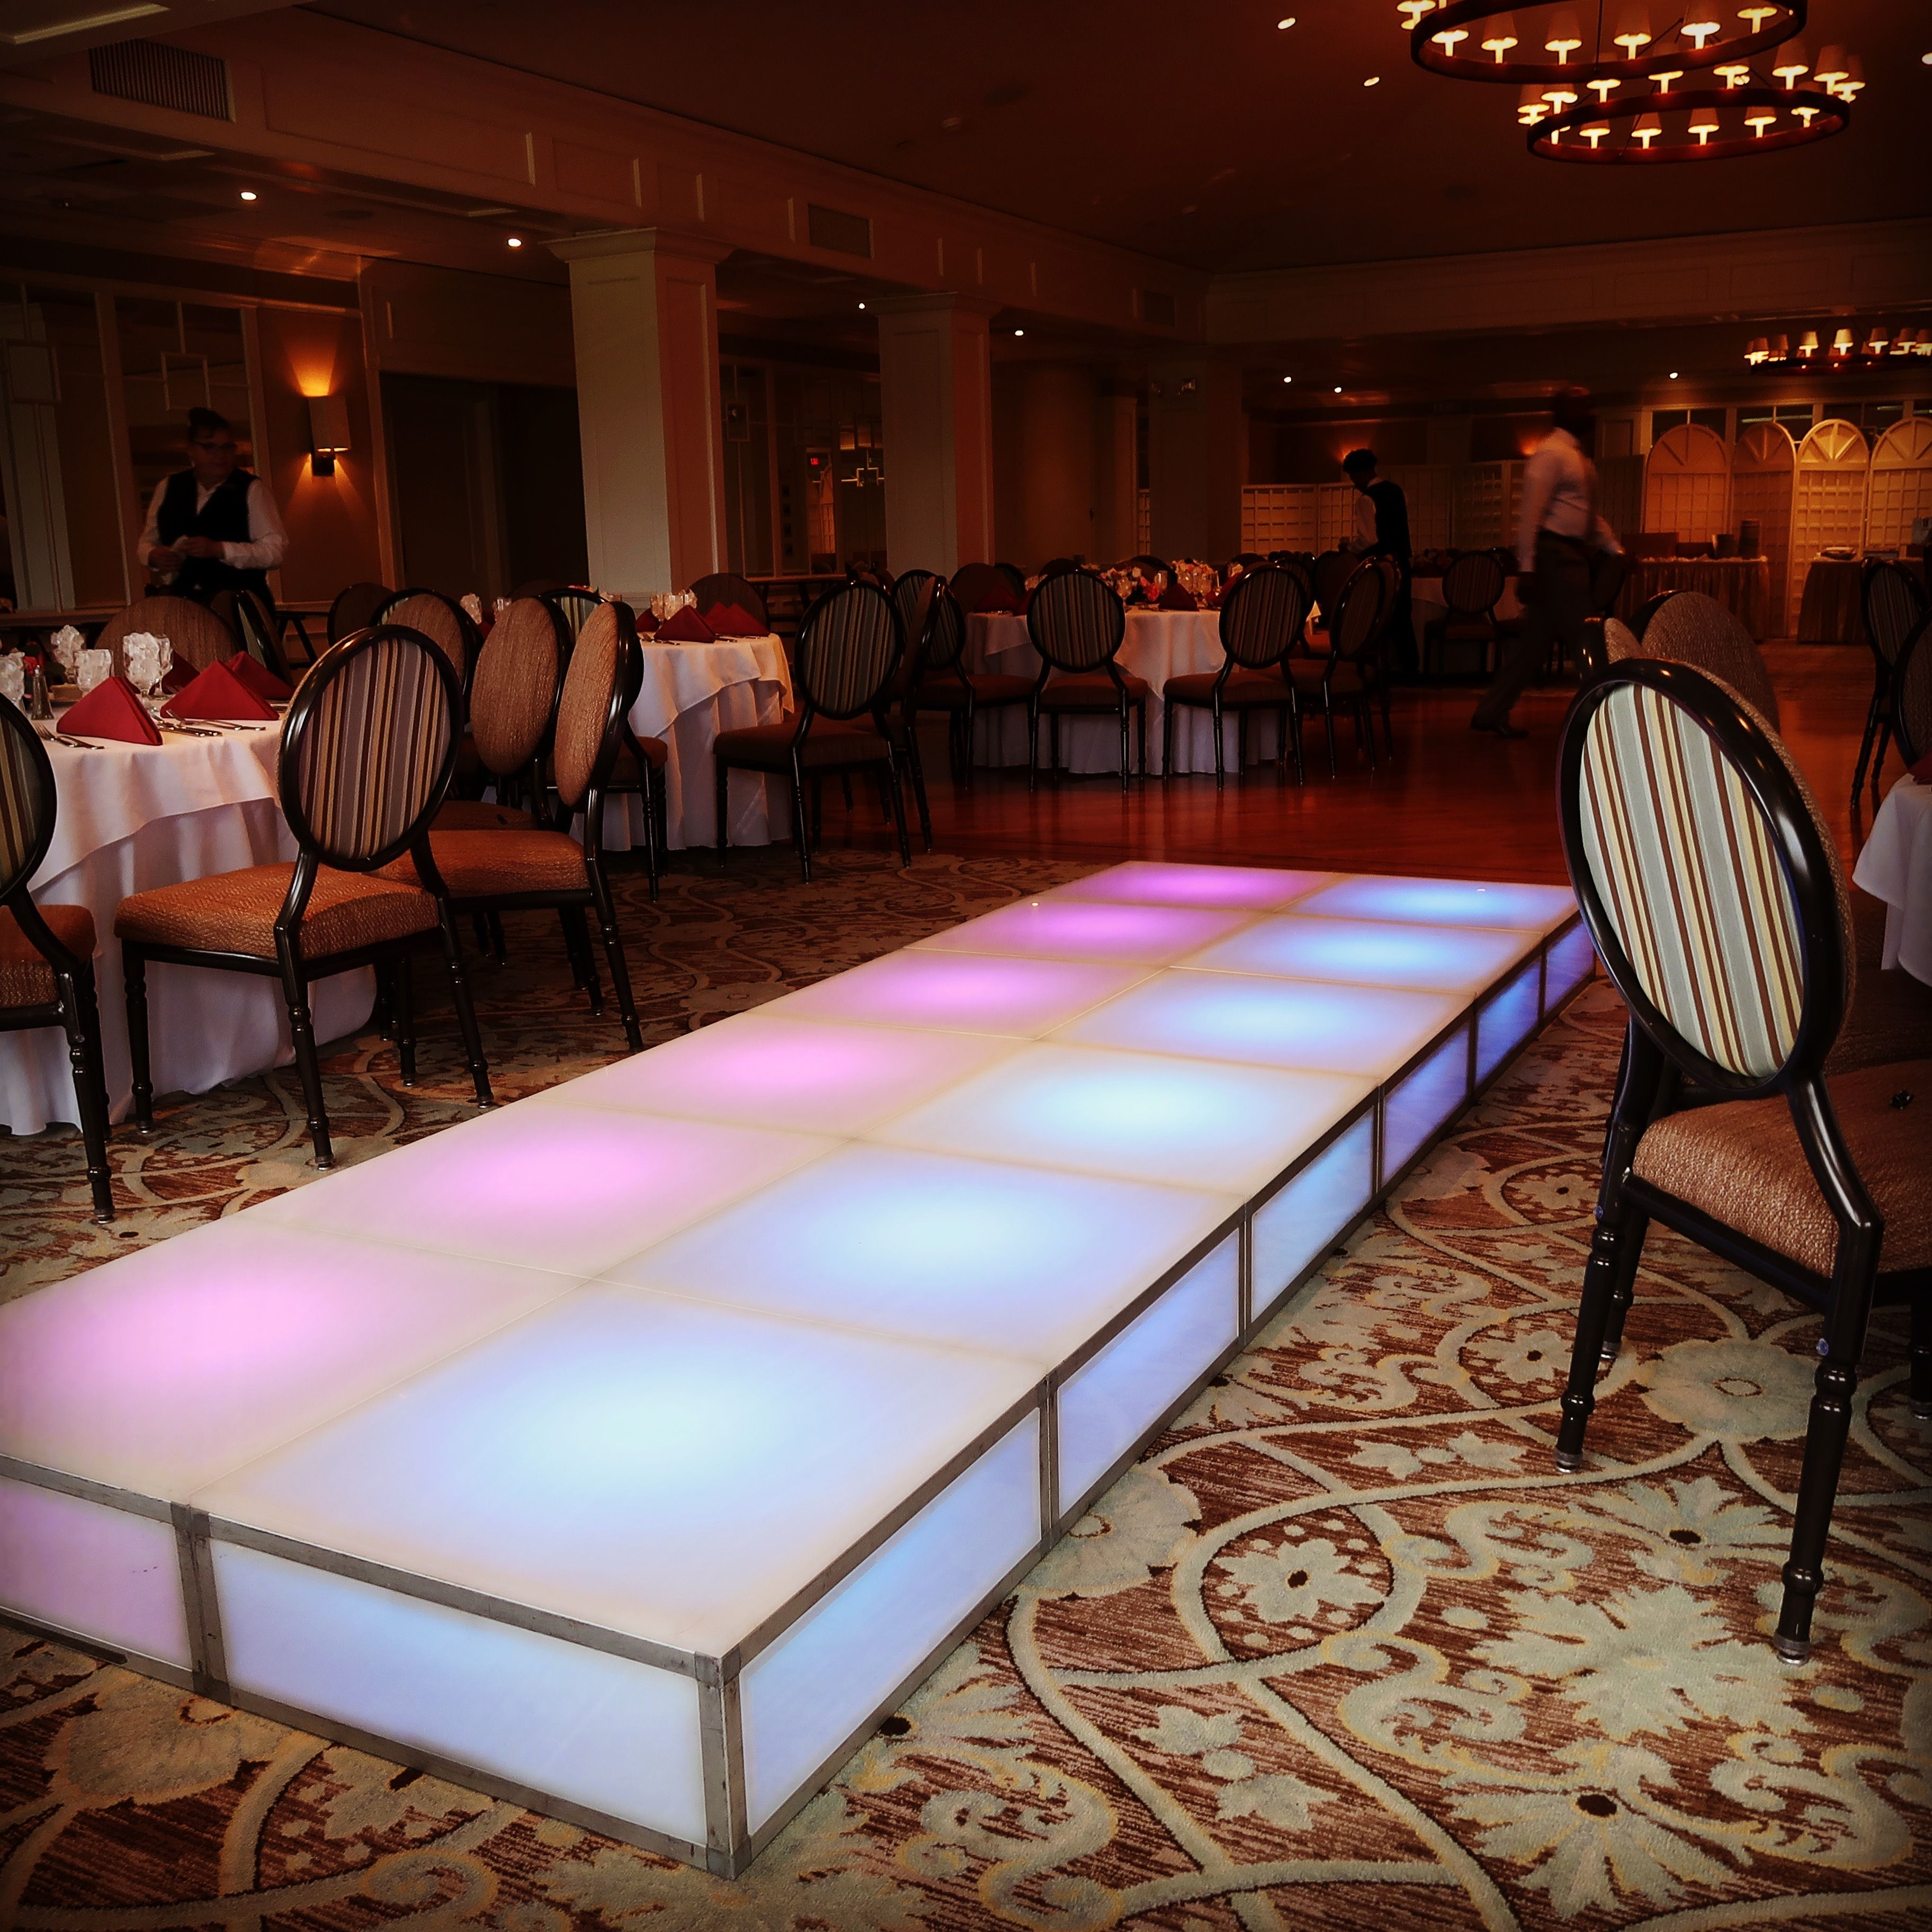 Check Out Our Led Fashion Show Runway Available For Rental Call Us At 1 800 804 4889 For Pricing And Availability Led Fashion Decor Outdoor Furniture